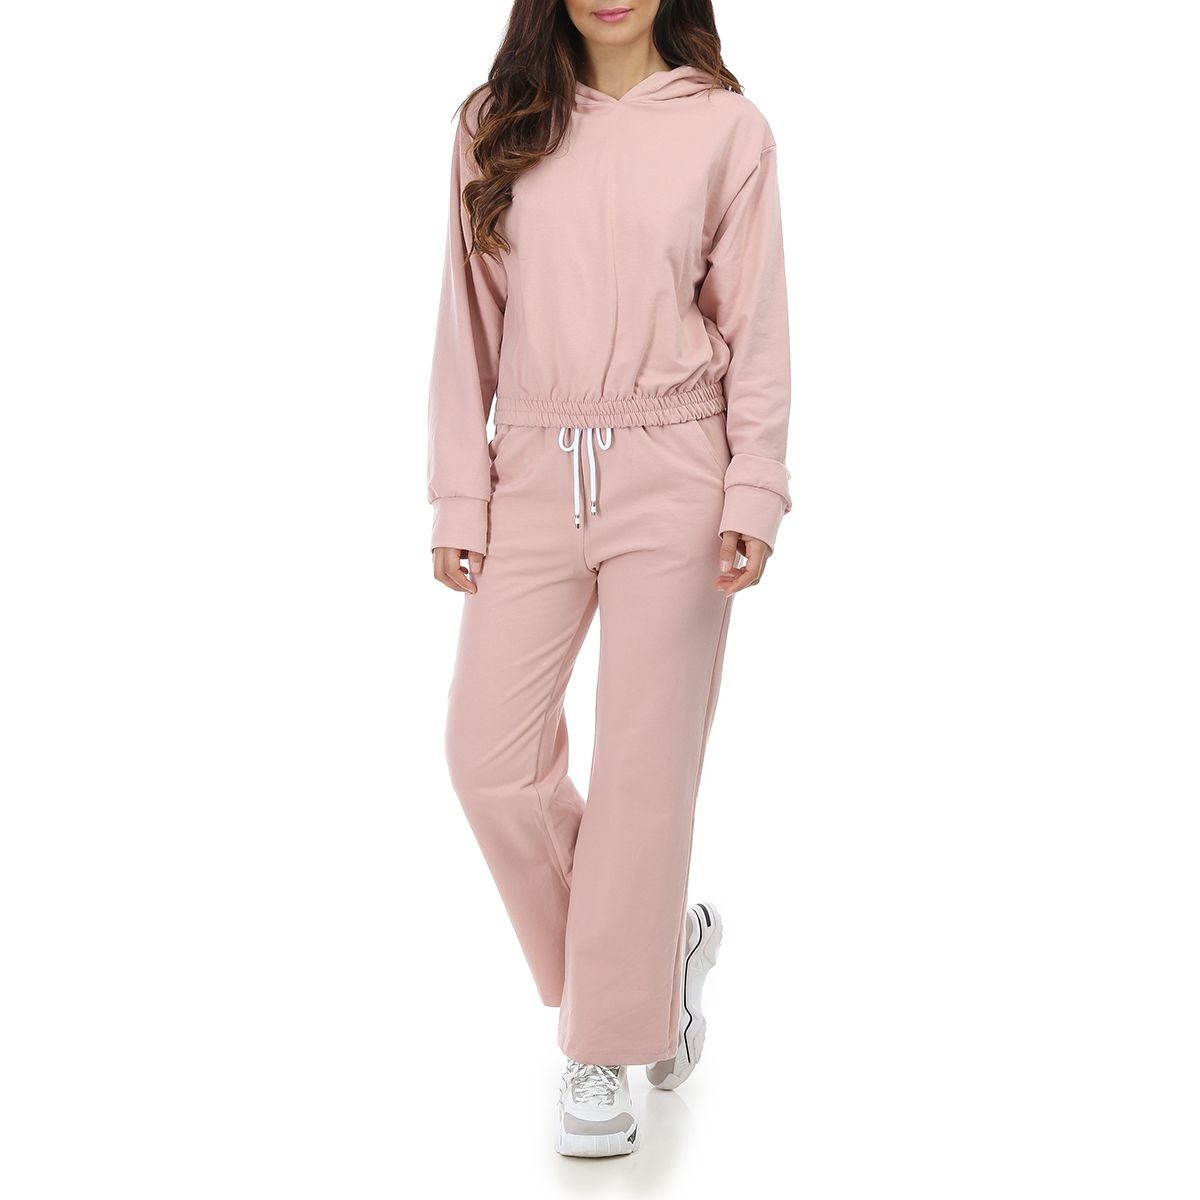 Ensemble rose avec jogging large